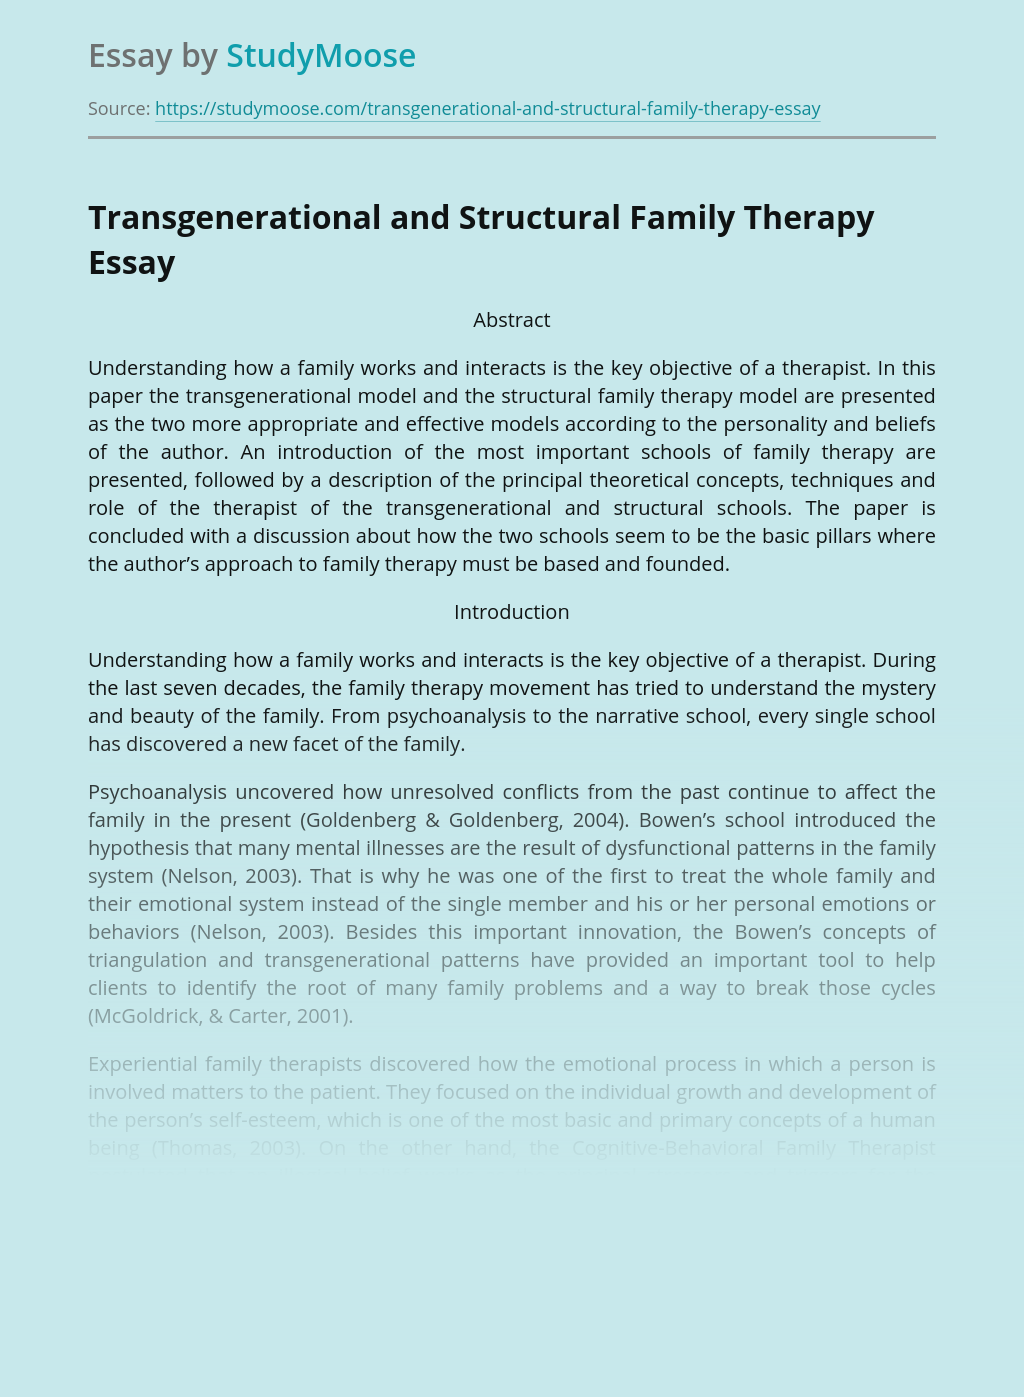 Transgenerational and Structural Family Therapy